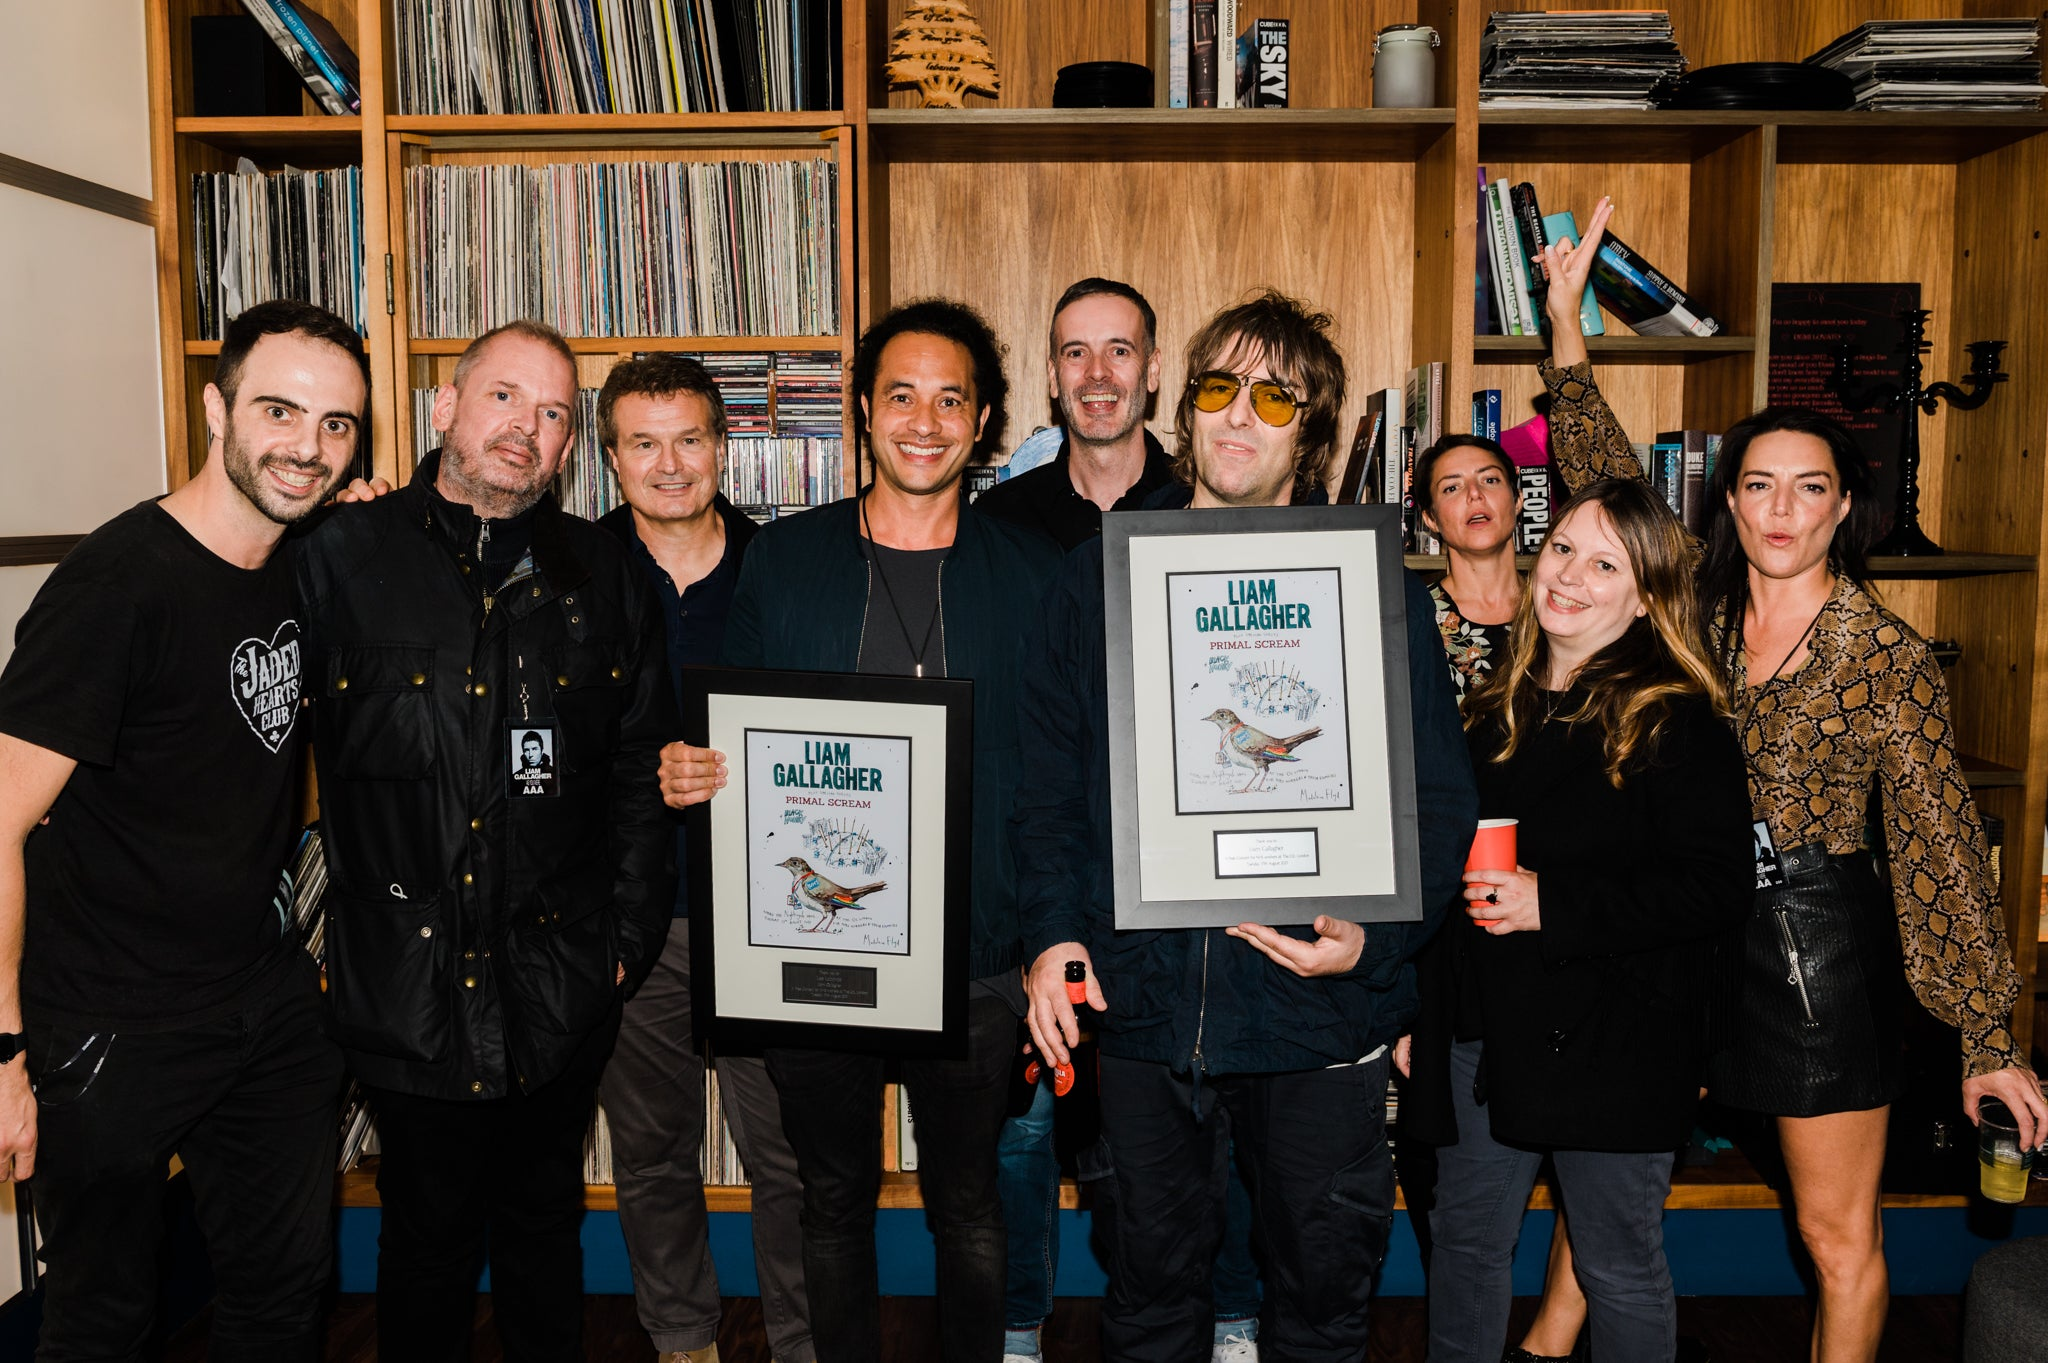 The O2 present Liam Gallagher with commemorative artwork to mark NHS show